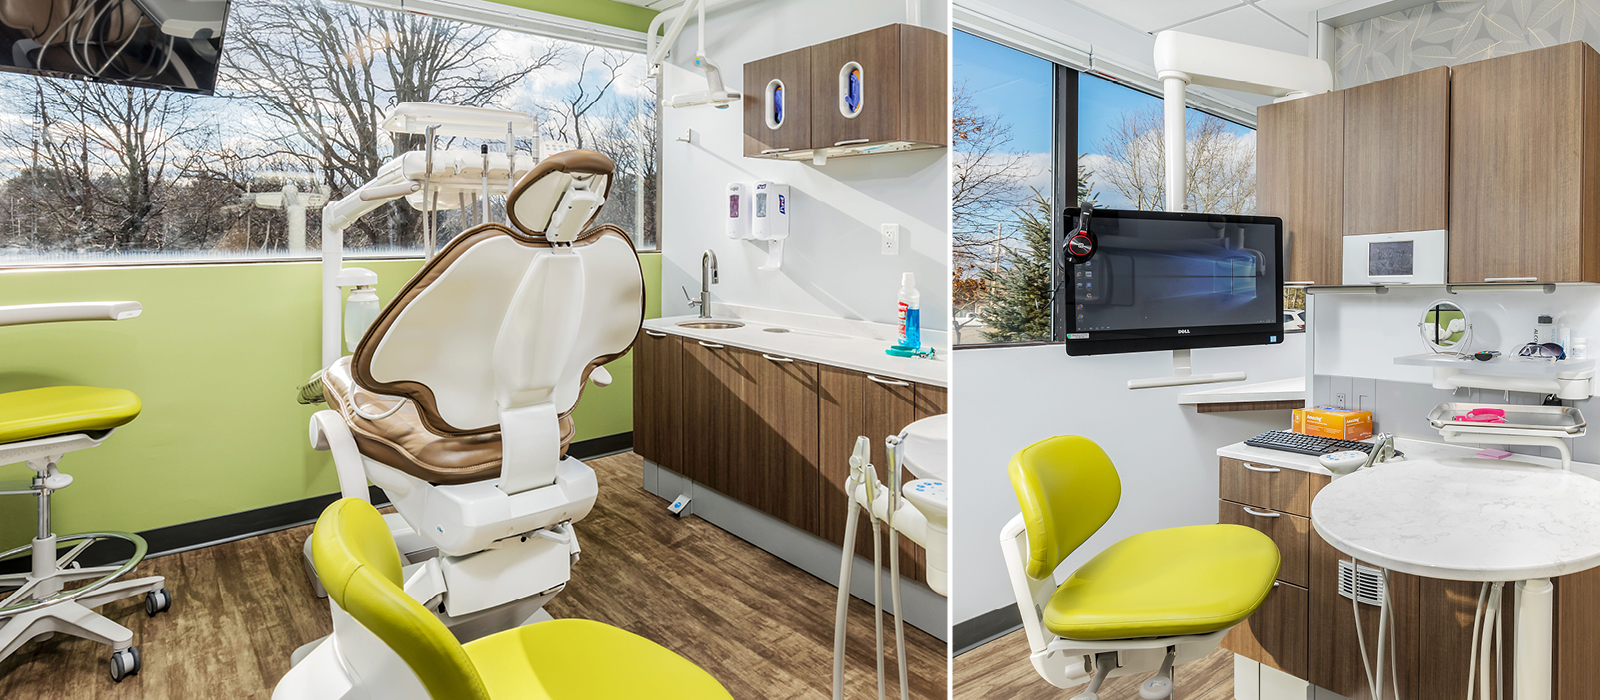 Scituate Family Dental treatment areas